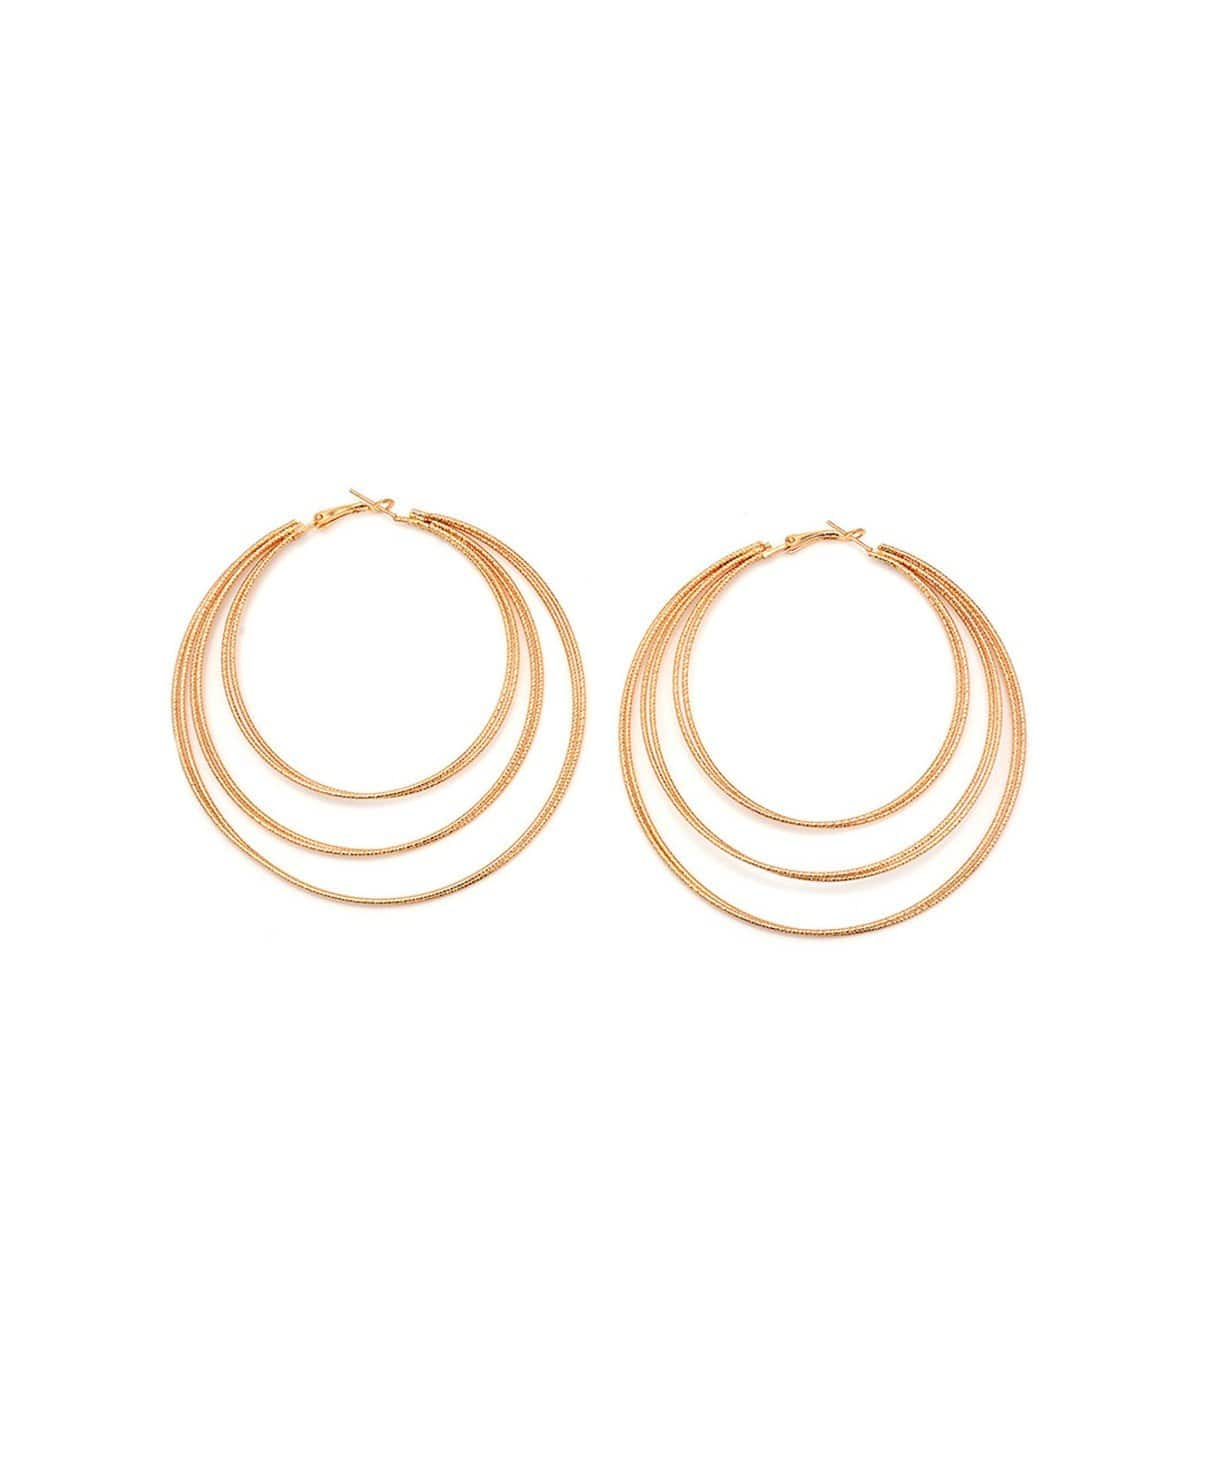 Tier Hoop Earrings - Uptownie